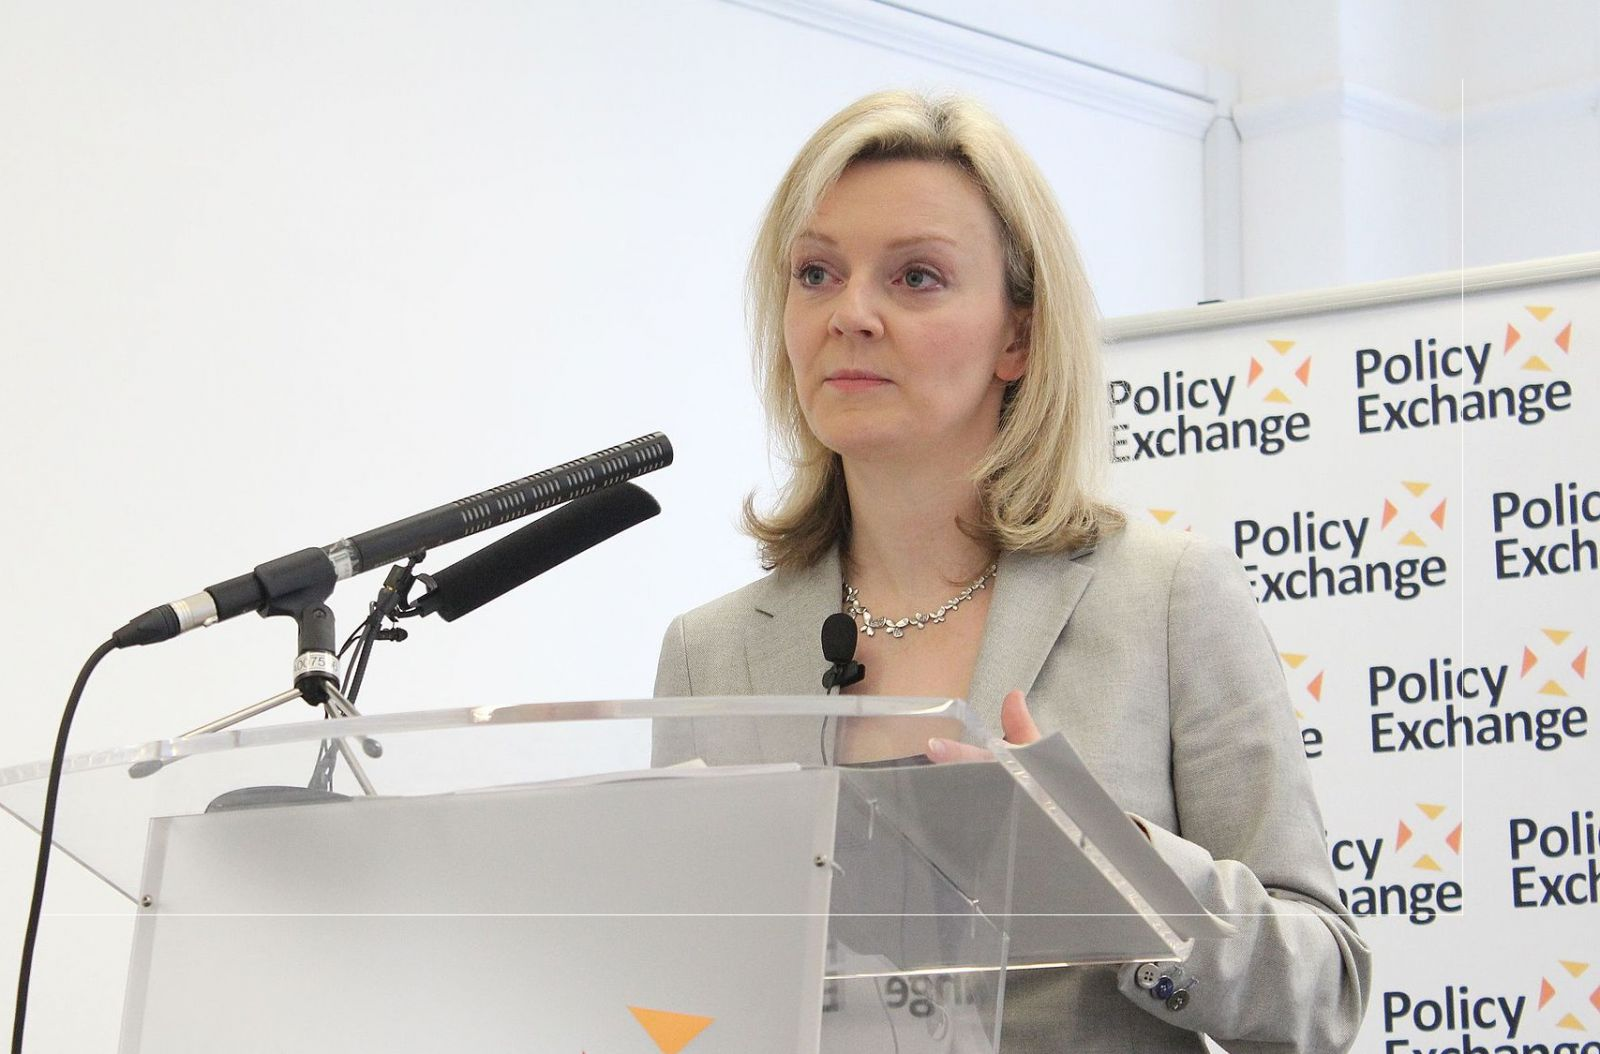 A photo of Liz Truss, current Home Secretary, standing at a podium